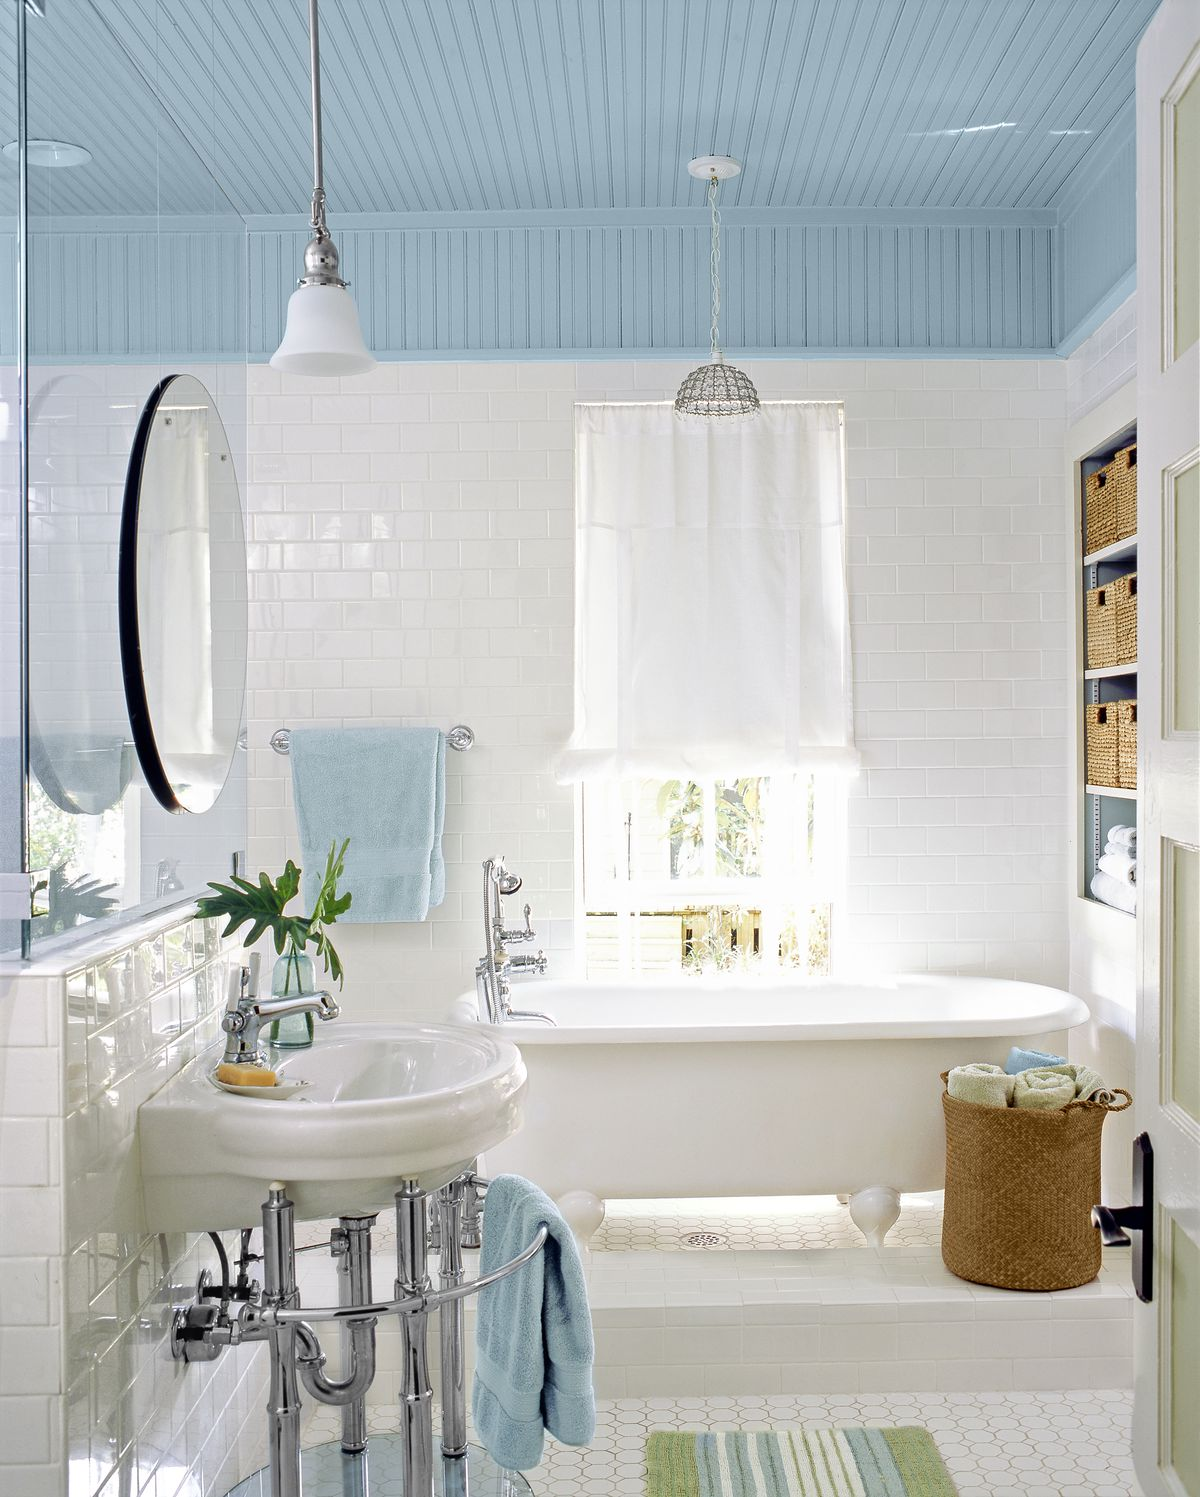 Light blue and white bathroom update with new beadboard above windows.